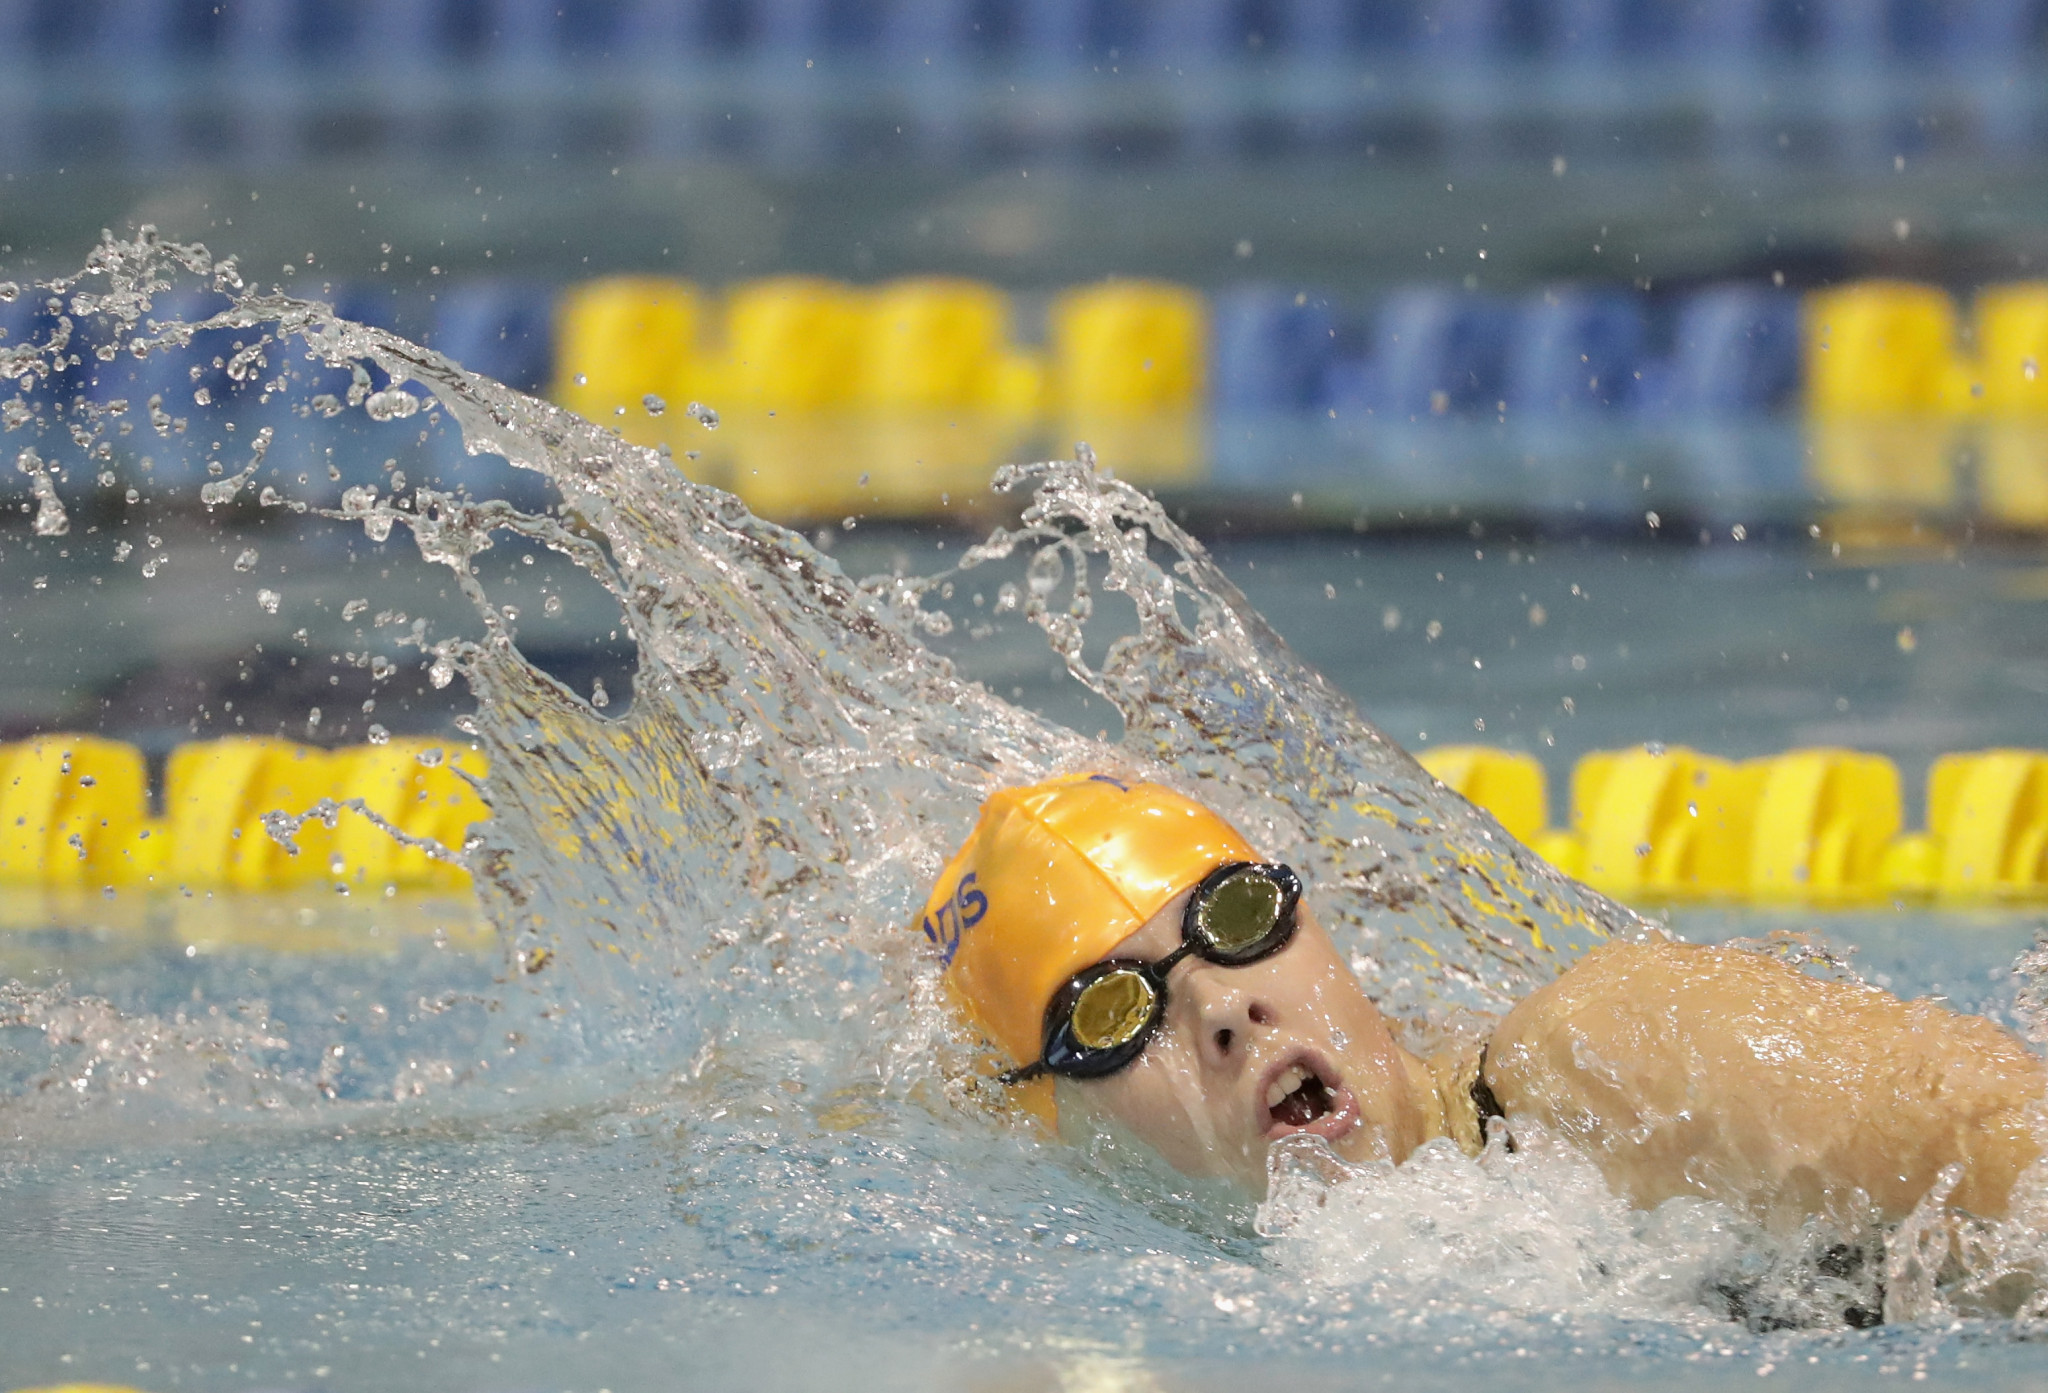 Gaffney sets world record to open World Para Swimming World Series event in Indianapolis